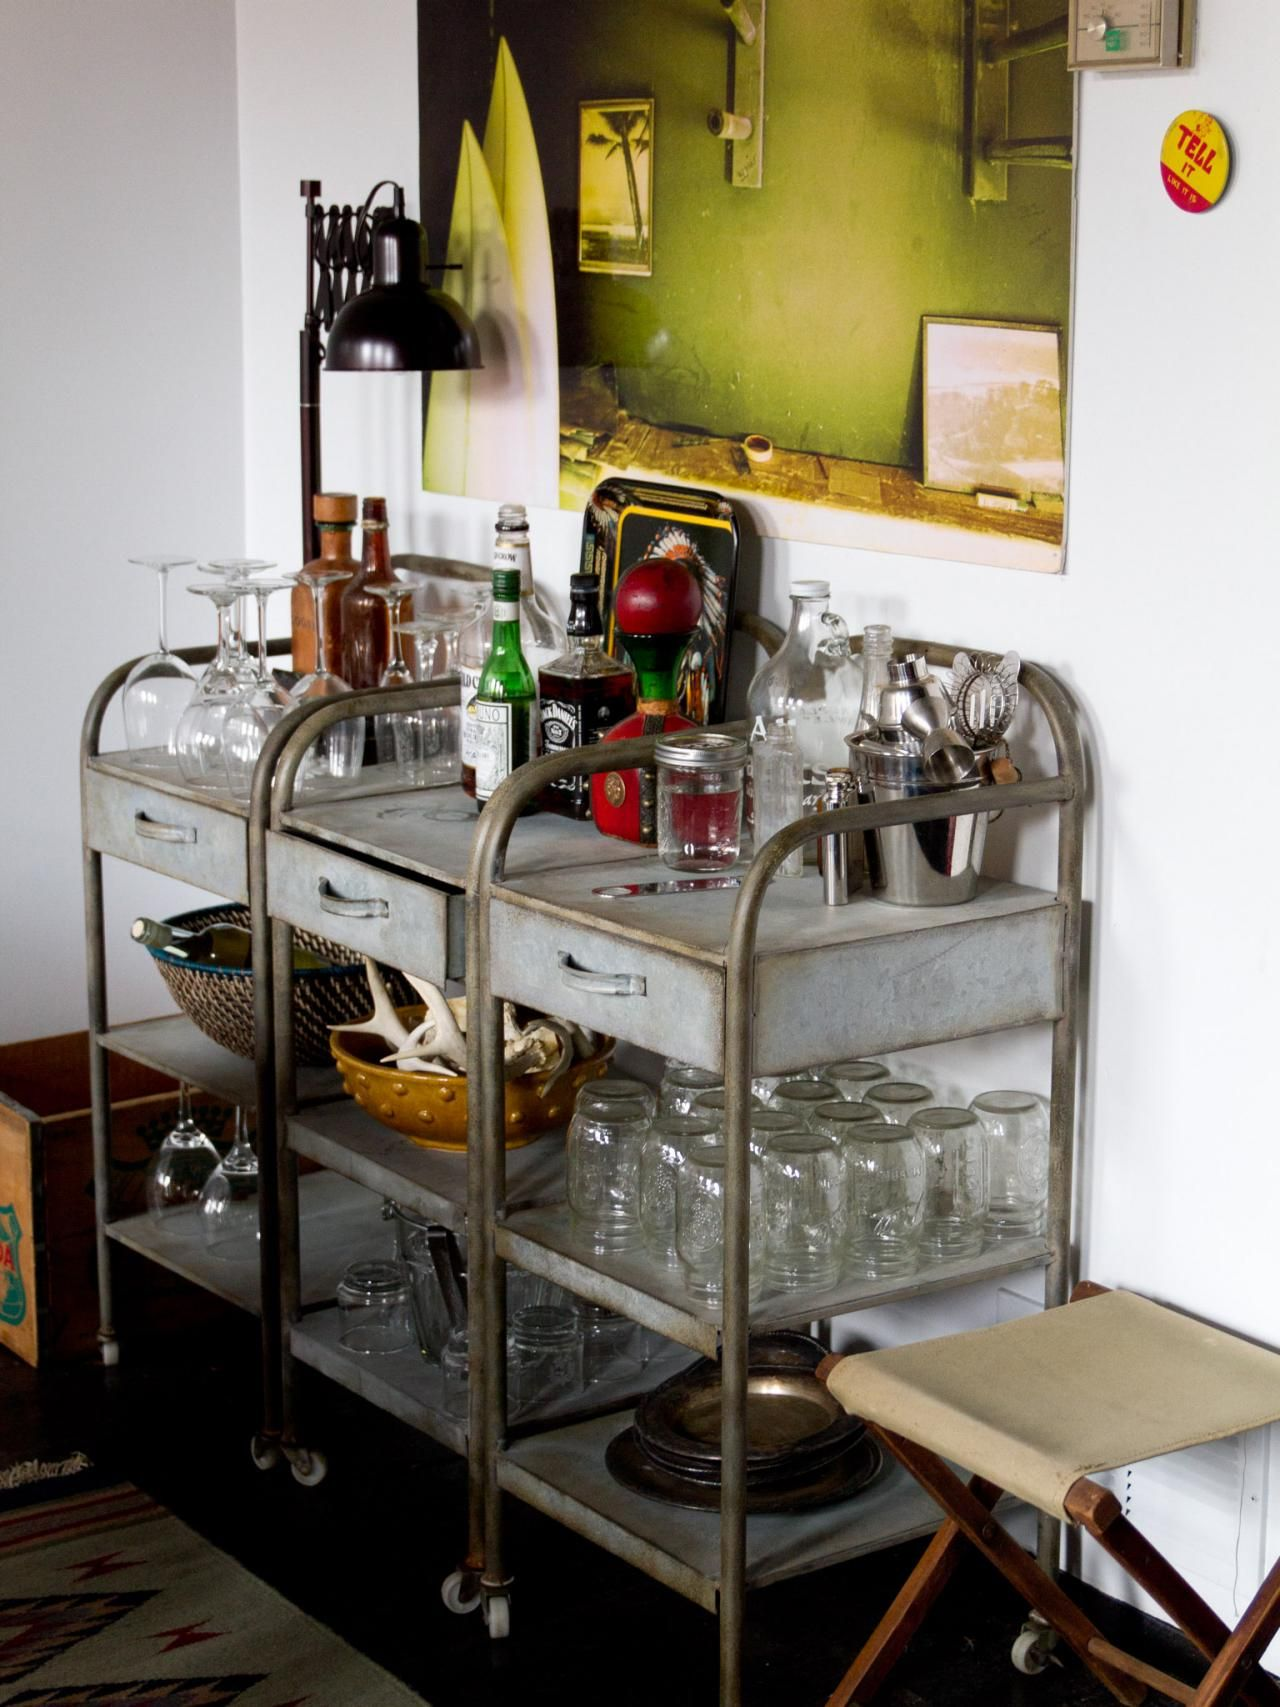 Basement Bar Ideas And Designs Pictures Options Tips: Home Remodeling - Ideas For Basements, Home Theaters & More